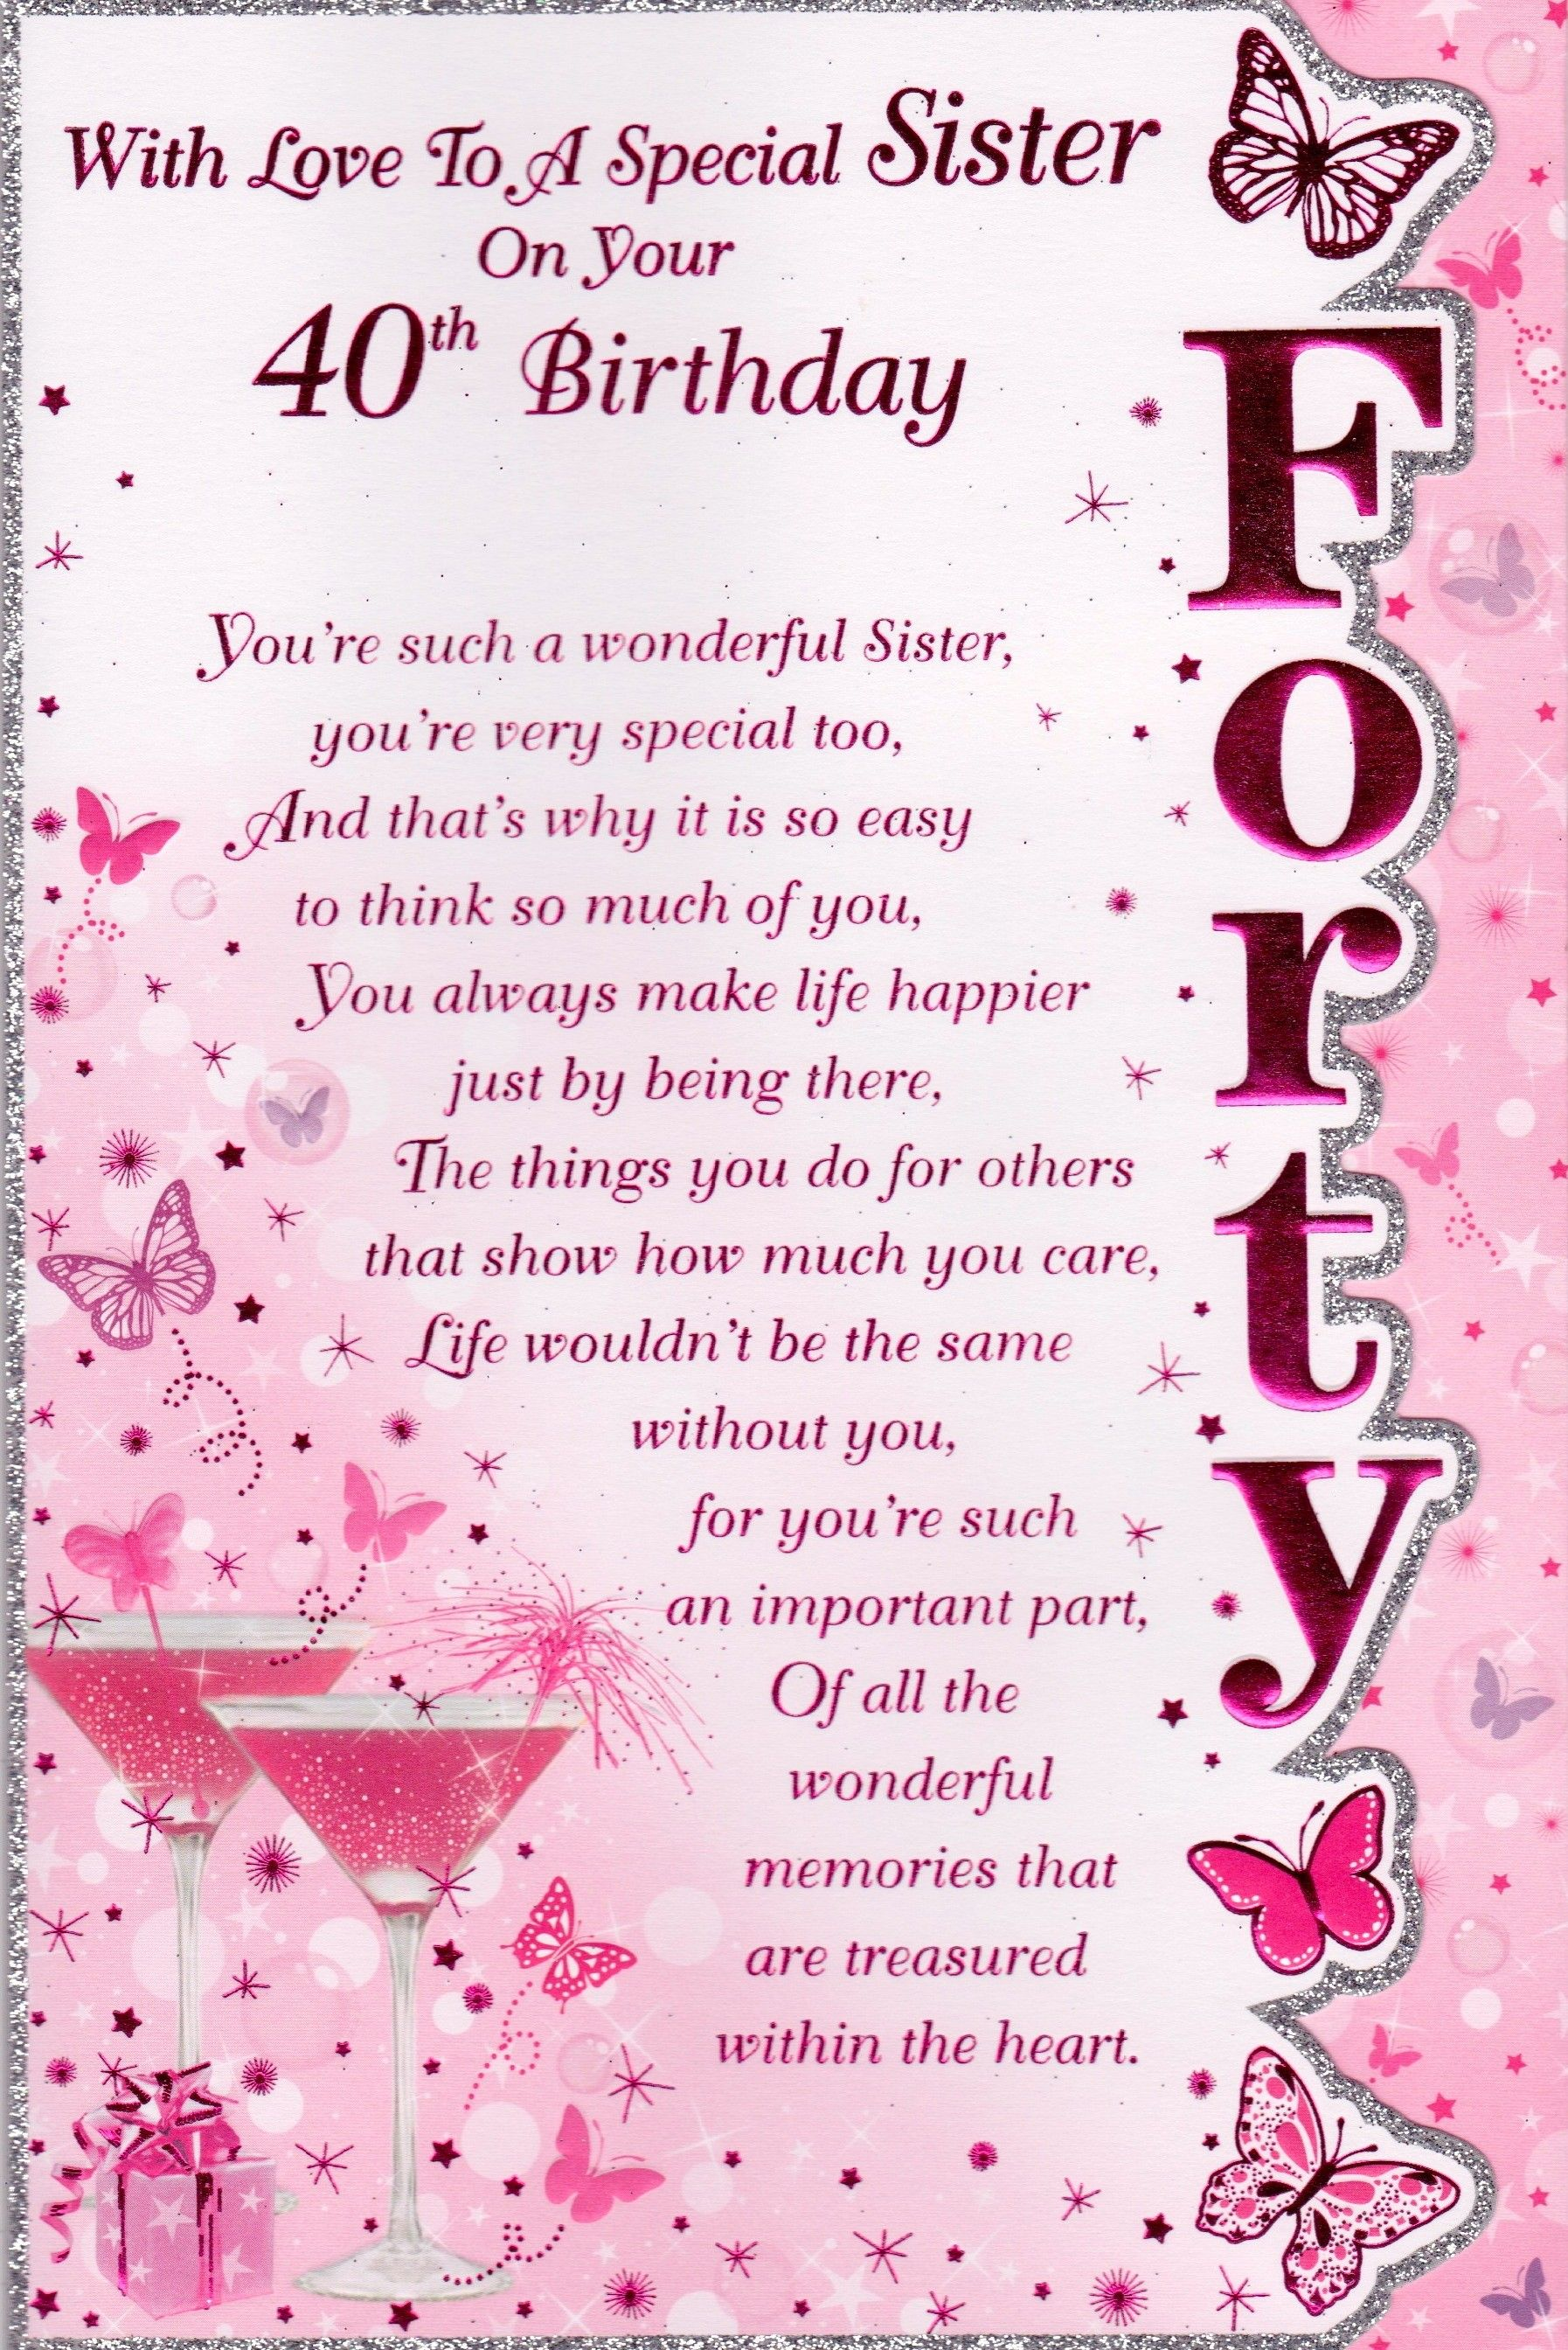 Happy Birthday Quotes For Sister Funny 40th Birthday Quotes Sister Birthday Quotes 40th Birthday Poems